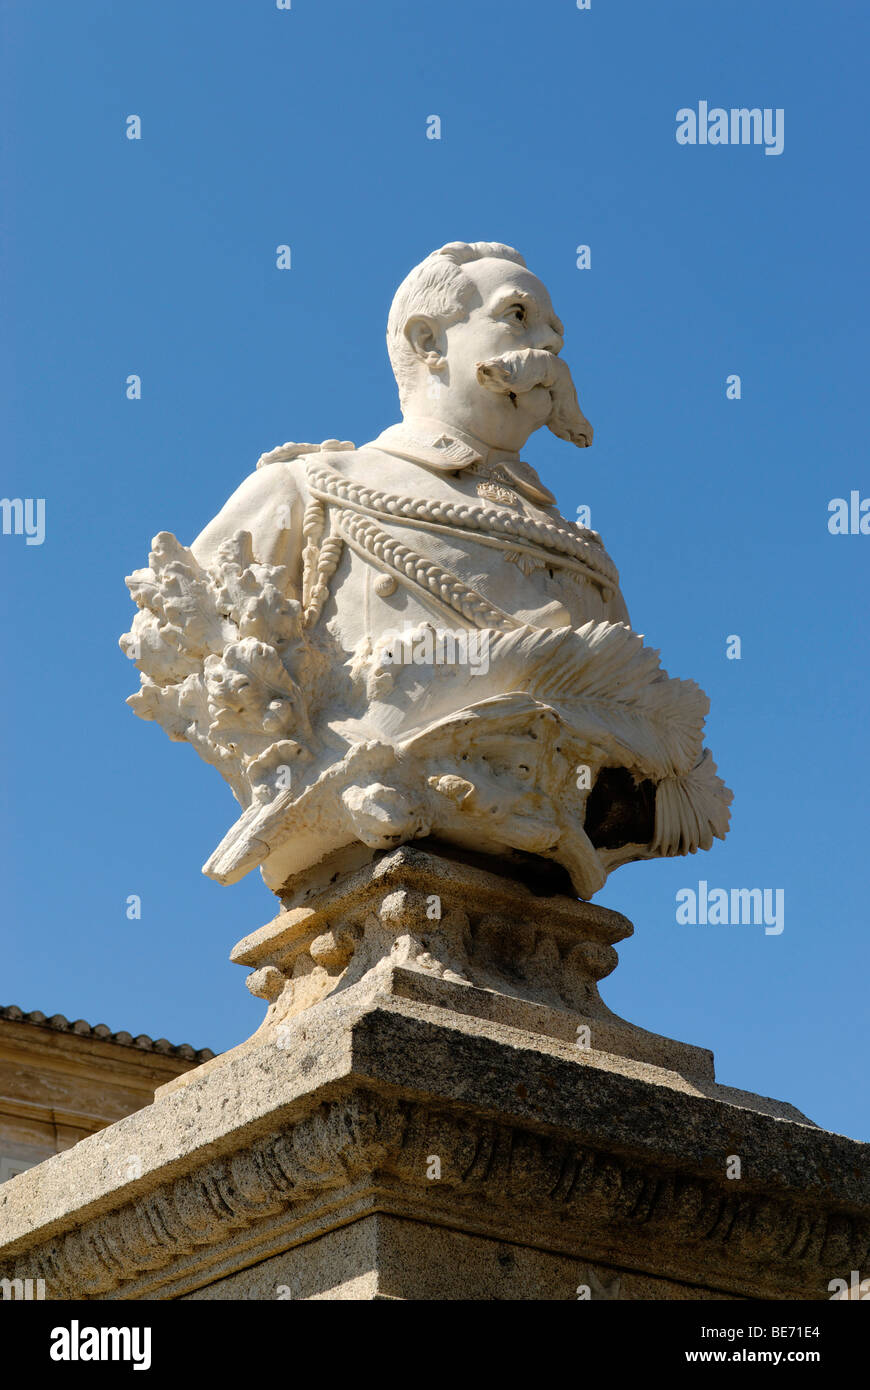 Bust of King Umberto I of Italy, Piazza Republica, Pizzo, Calabria, Italy, Europe - Stock Image